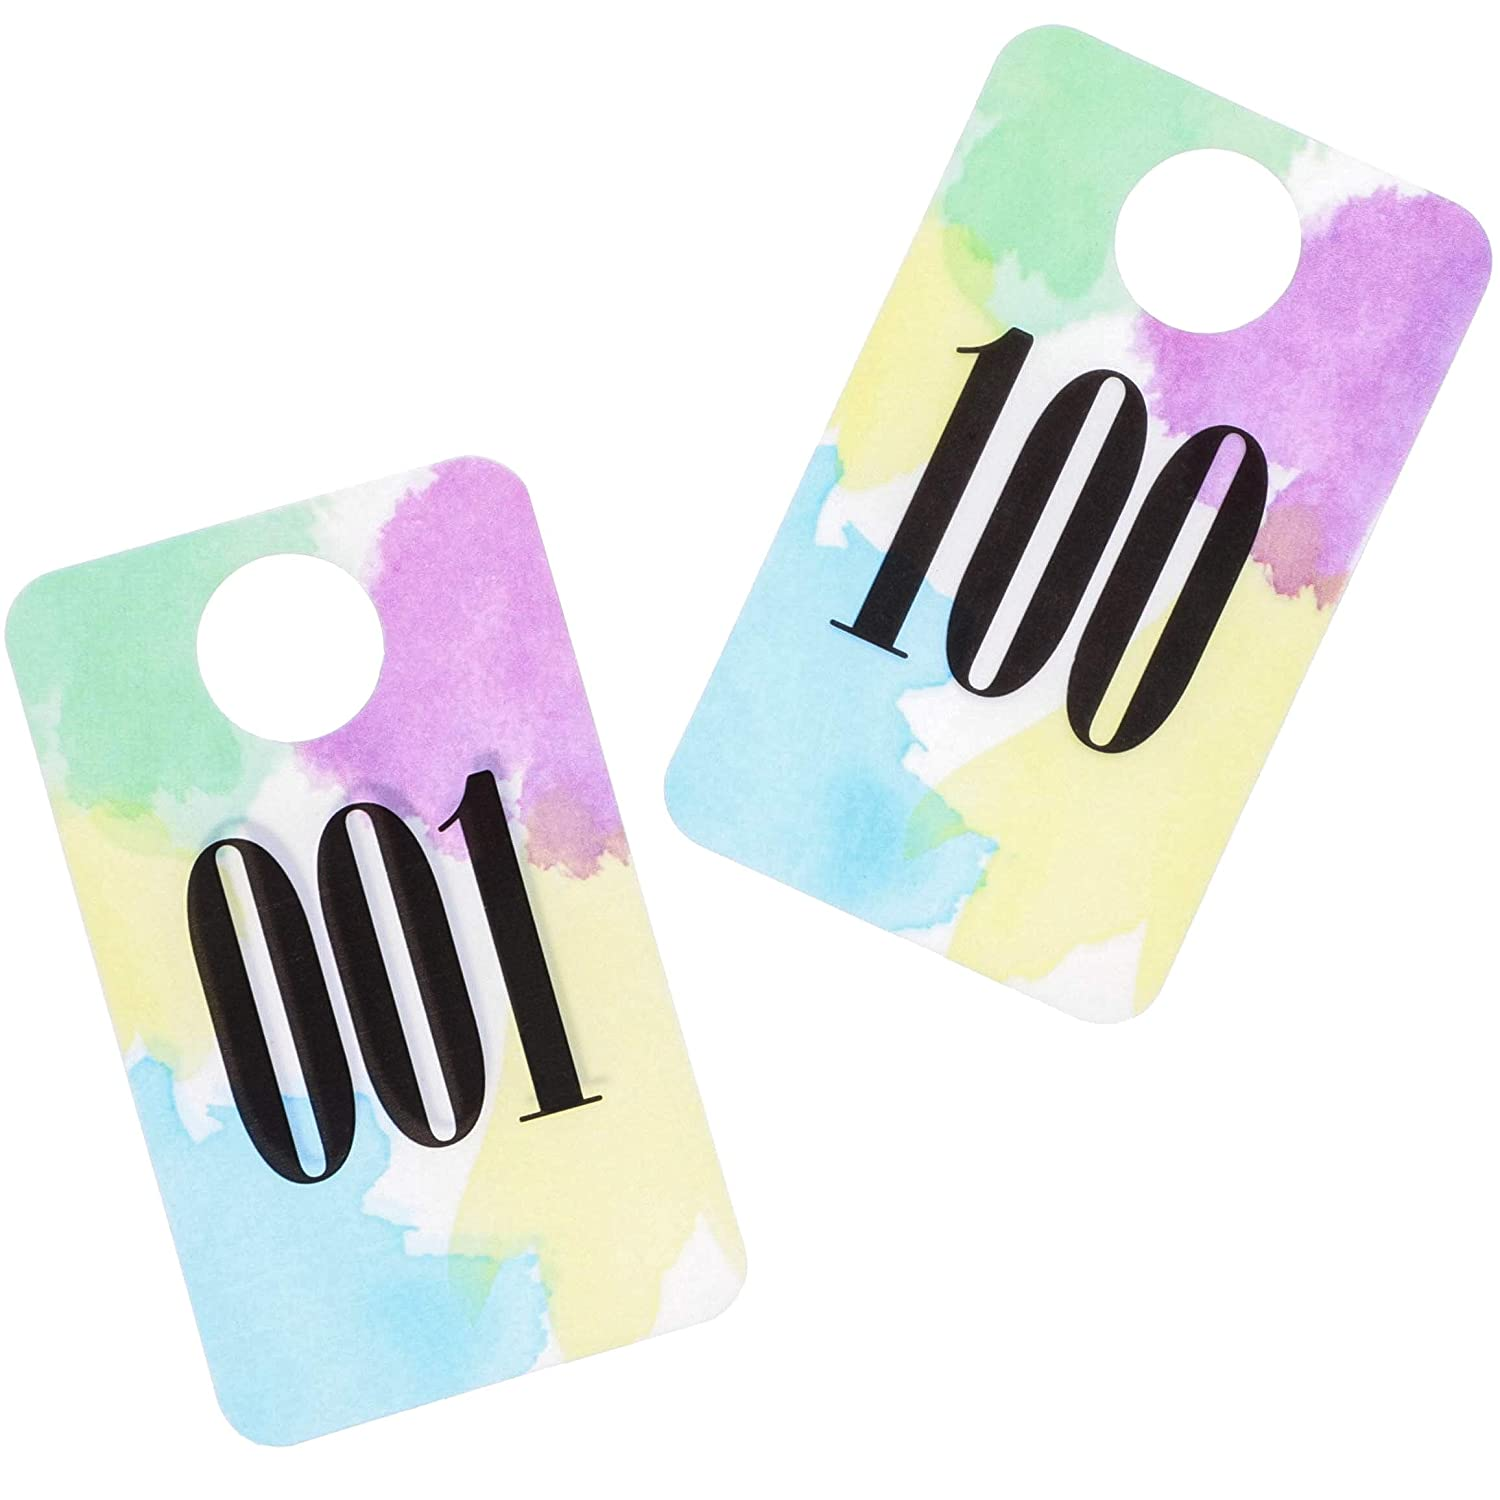 Juvale Set of 100 Live Sale Plastic Number Tags 2.5 x 1.5 Inches Numbers 001-100 Pastel Watercolor Design